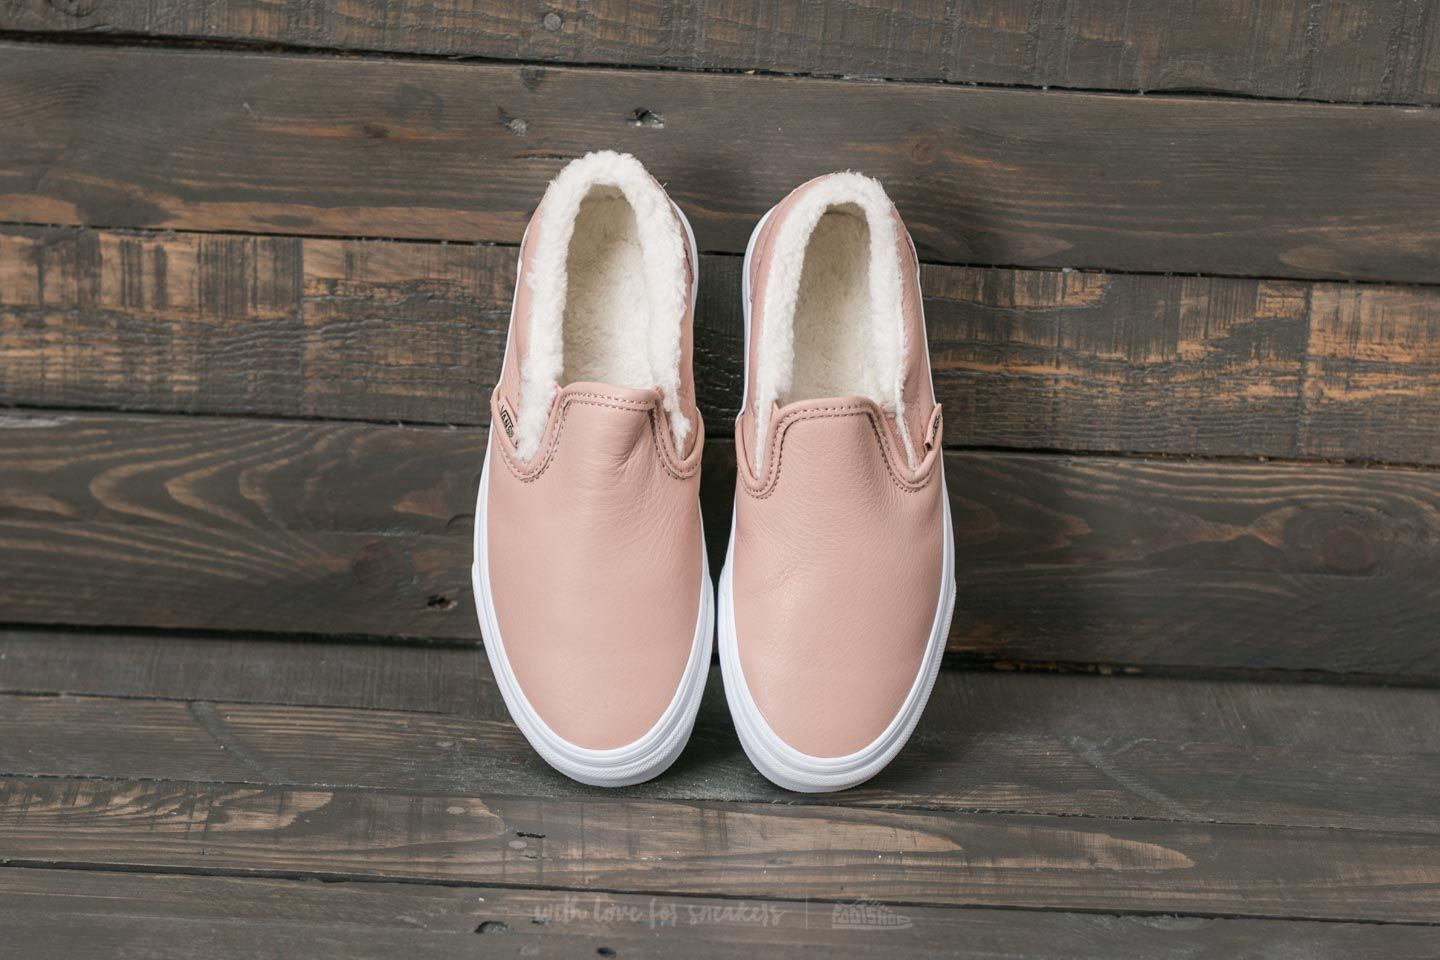 Vans Classic Slip On (Leather) Mahogany Rose True White | Footshop